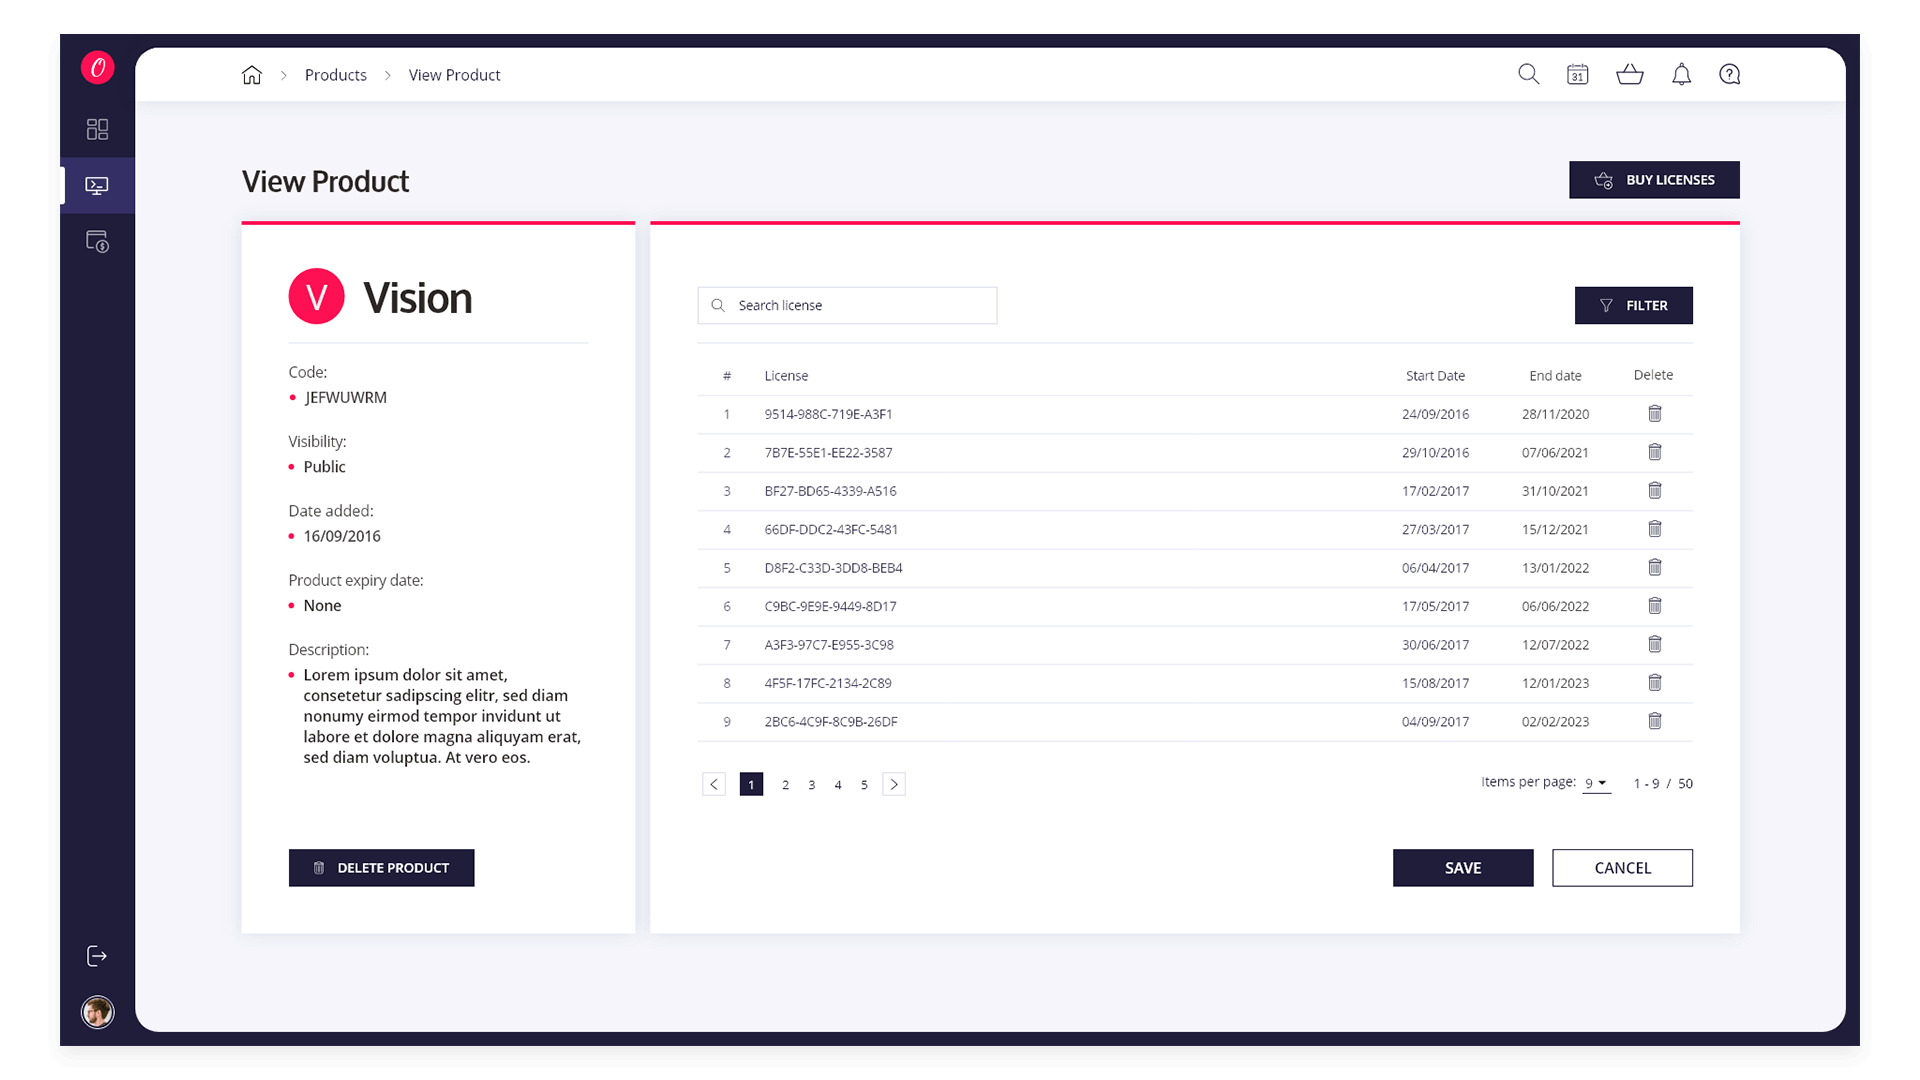 View Product Page (with licenses)